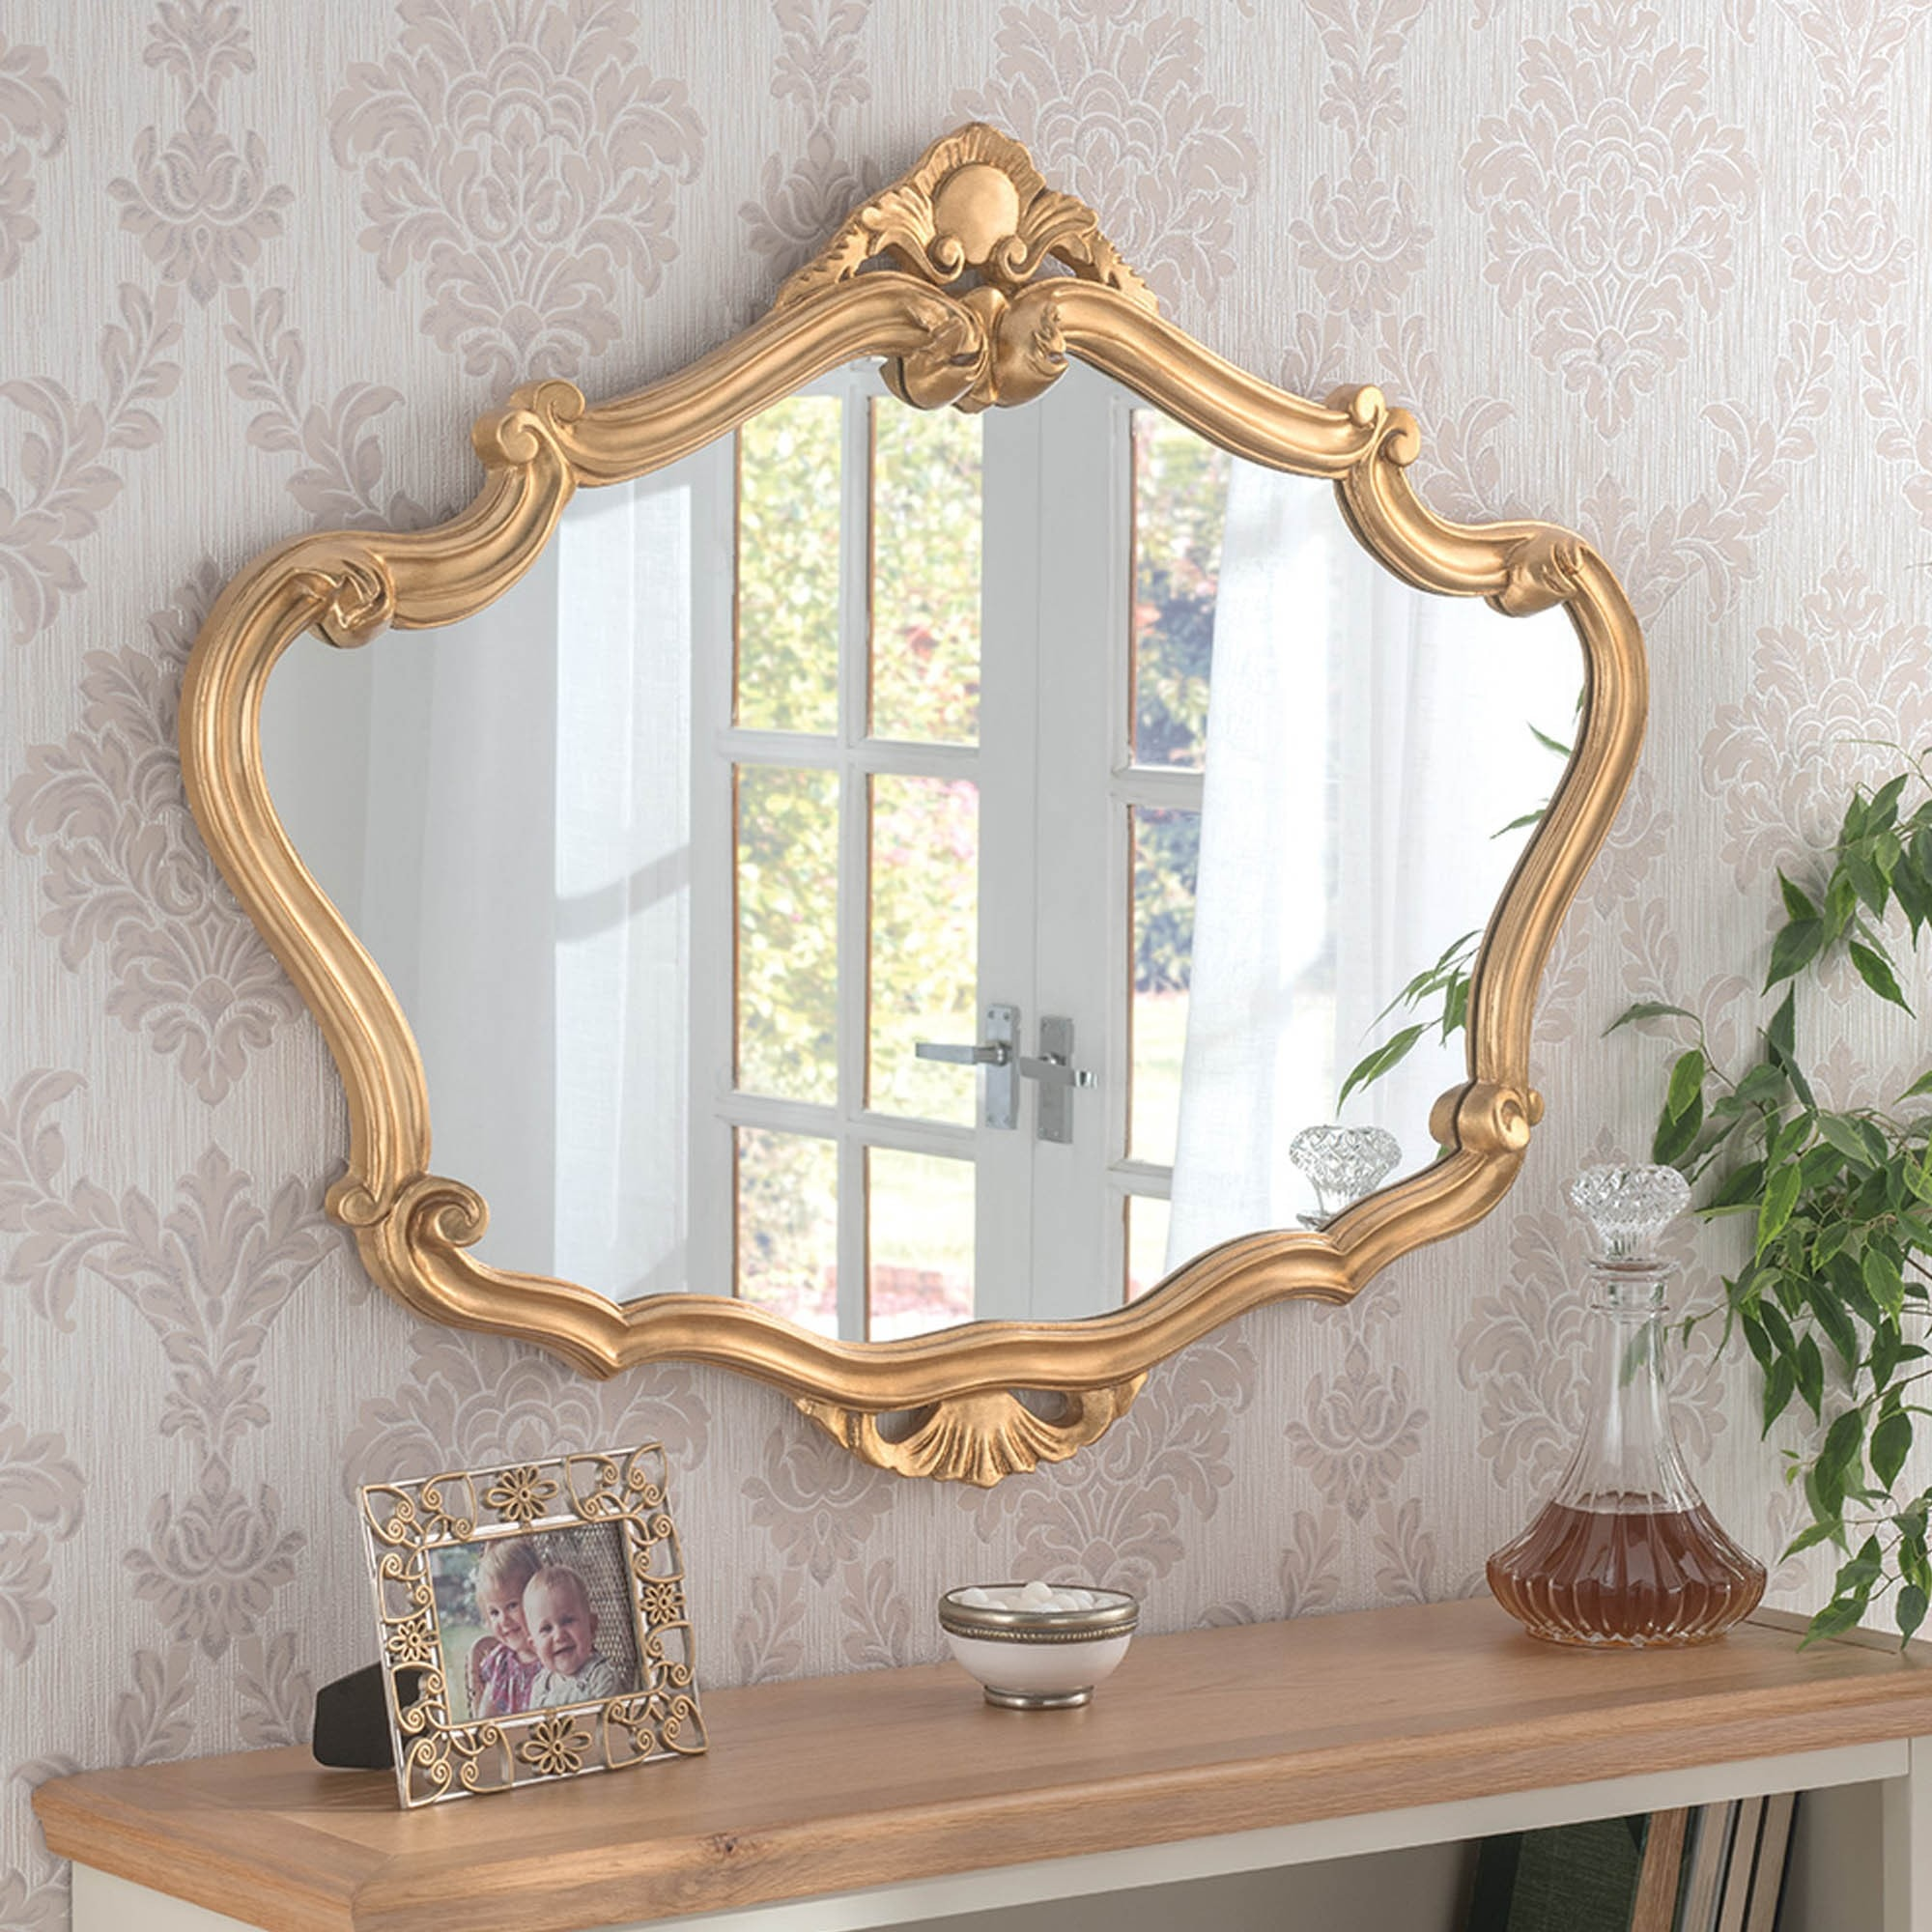 Gold Ornate Detailed Large Mirror Gold Decorative Mirror